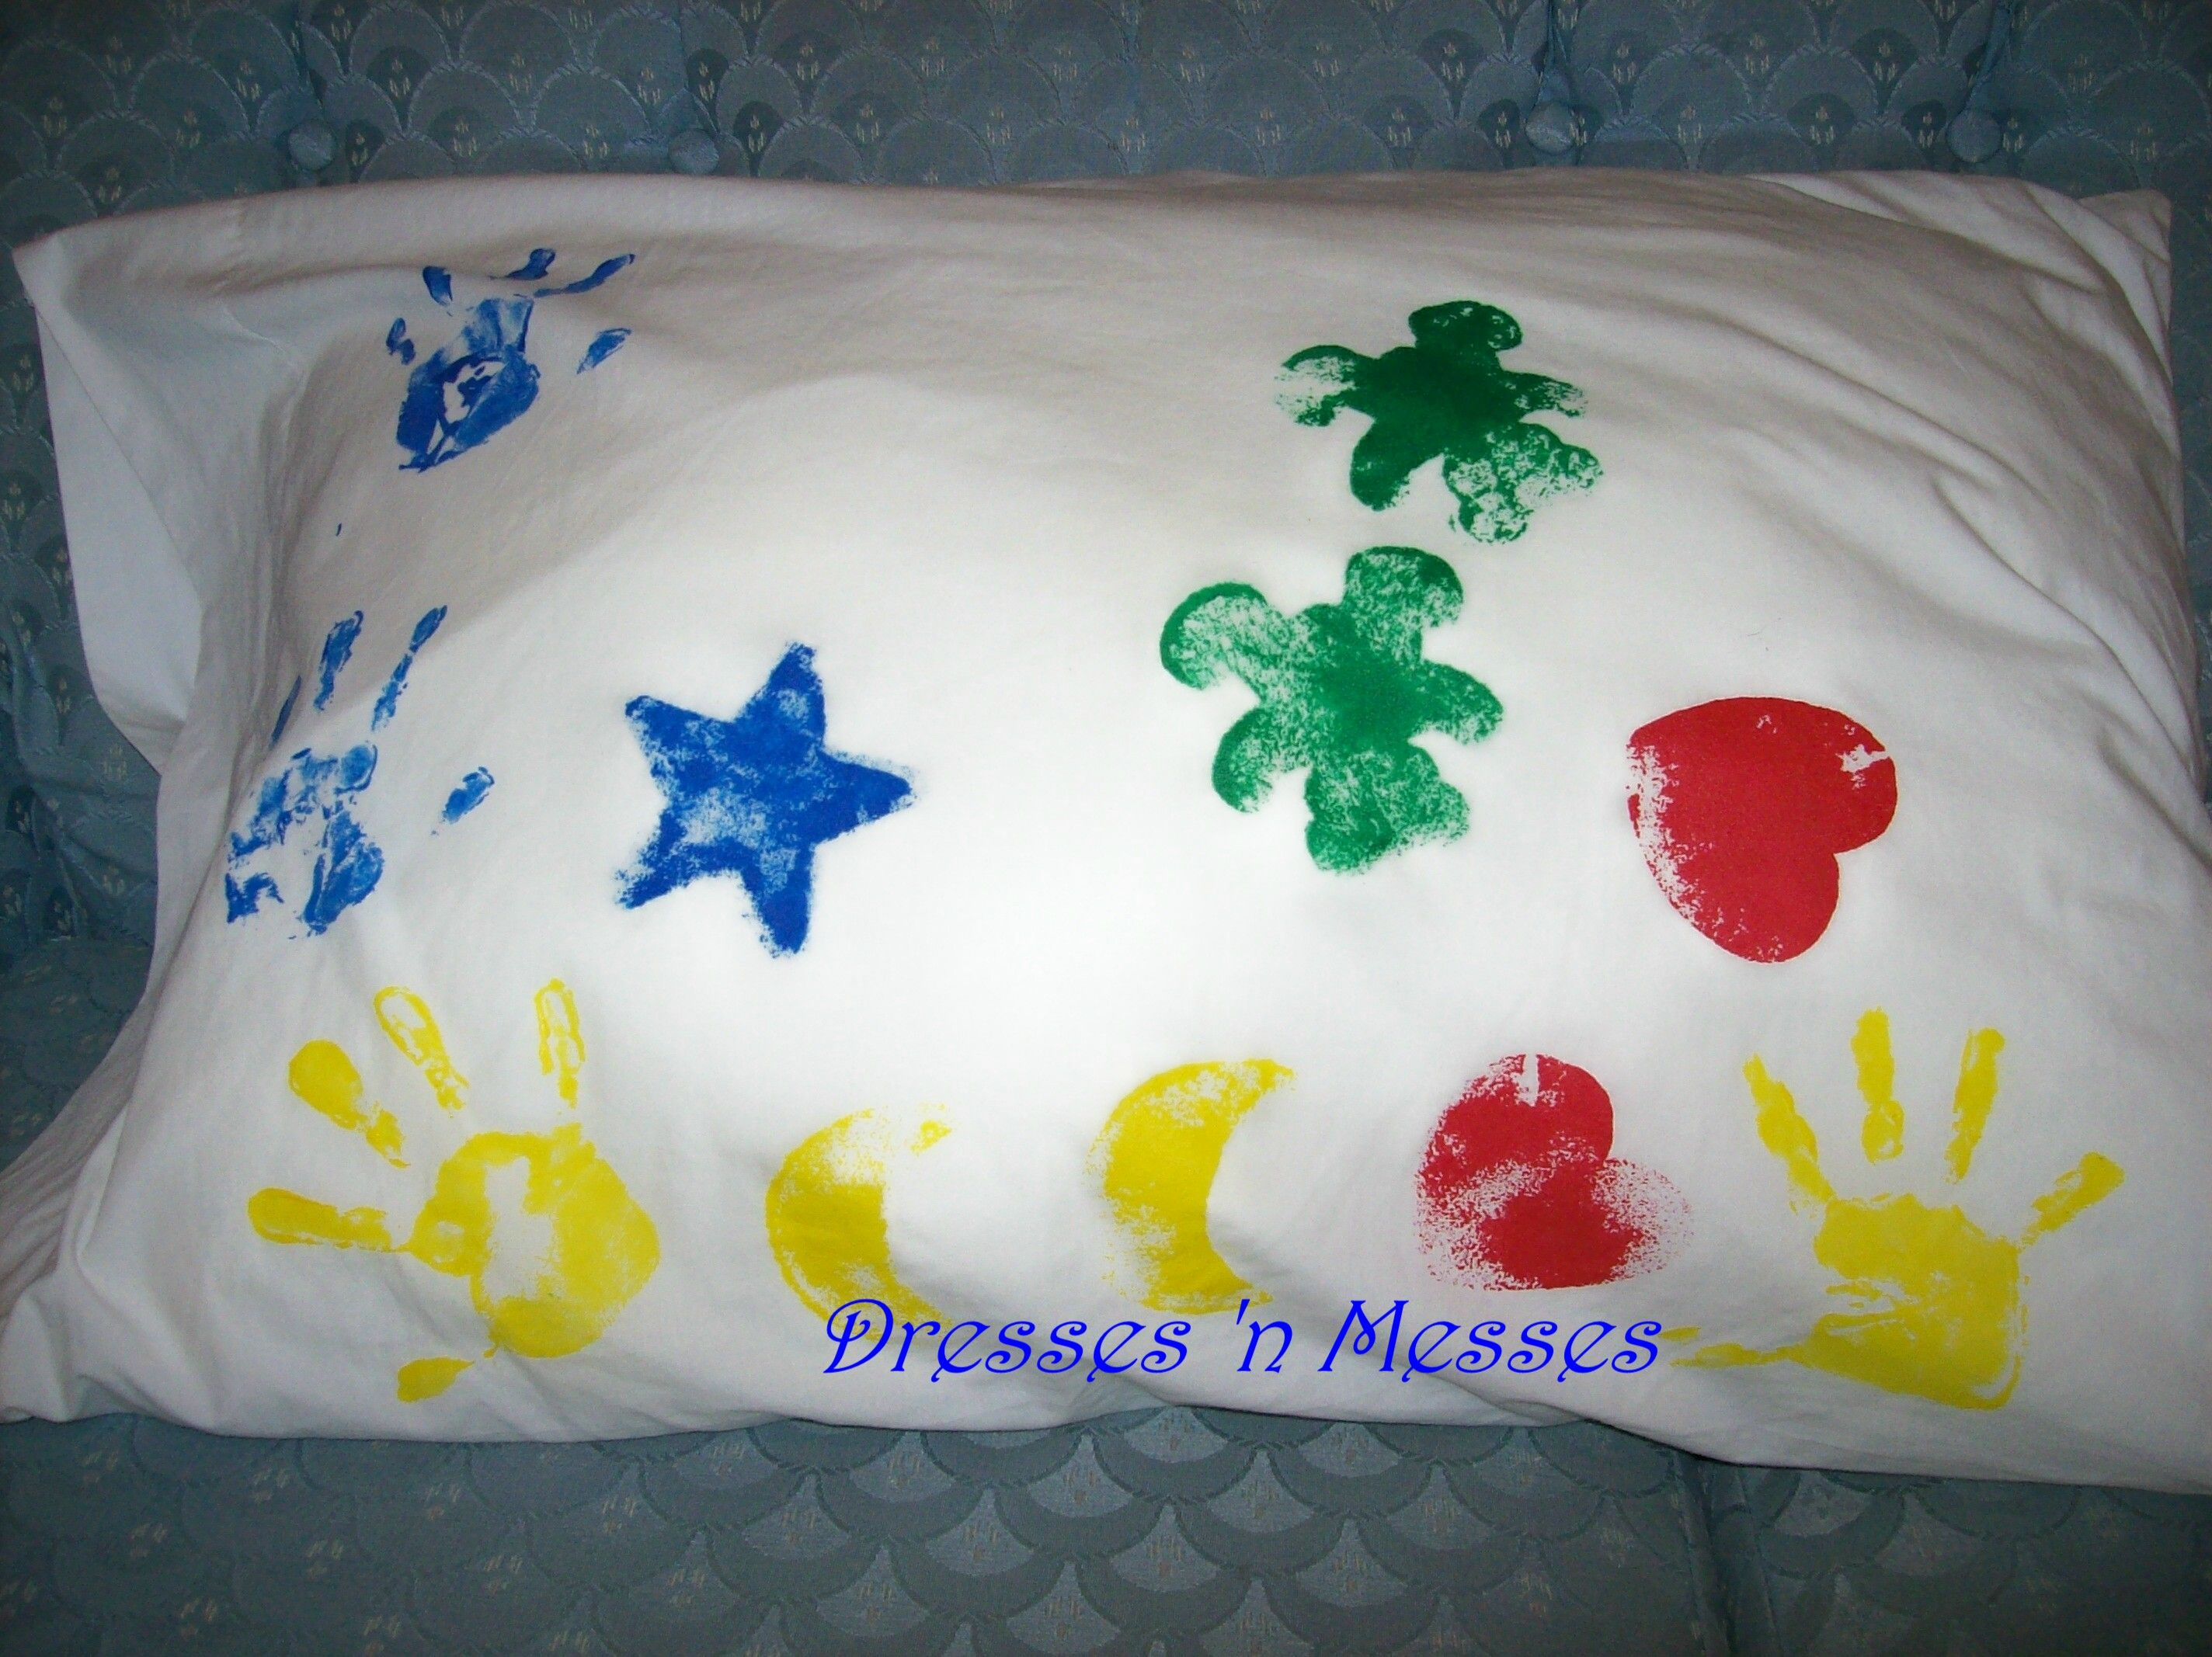 Cheap white pillowcases for crafts - Buy Cheap White Pillowcases And Shaped Sponges For The Kids To Decorate Their Pillowcase You